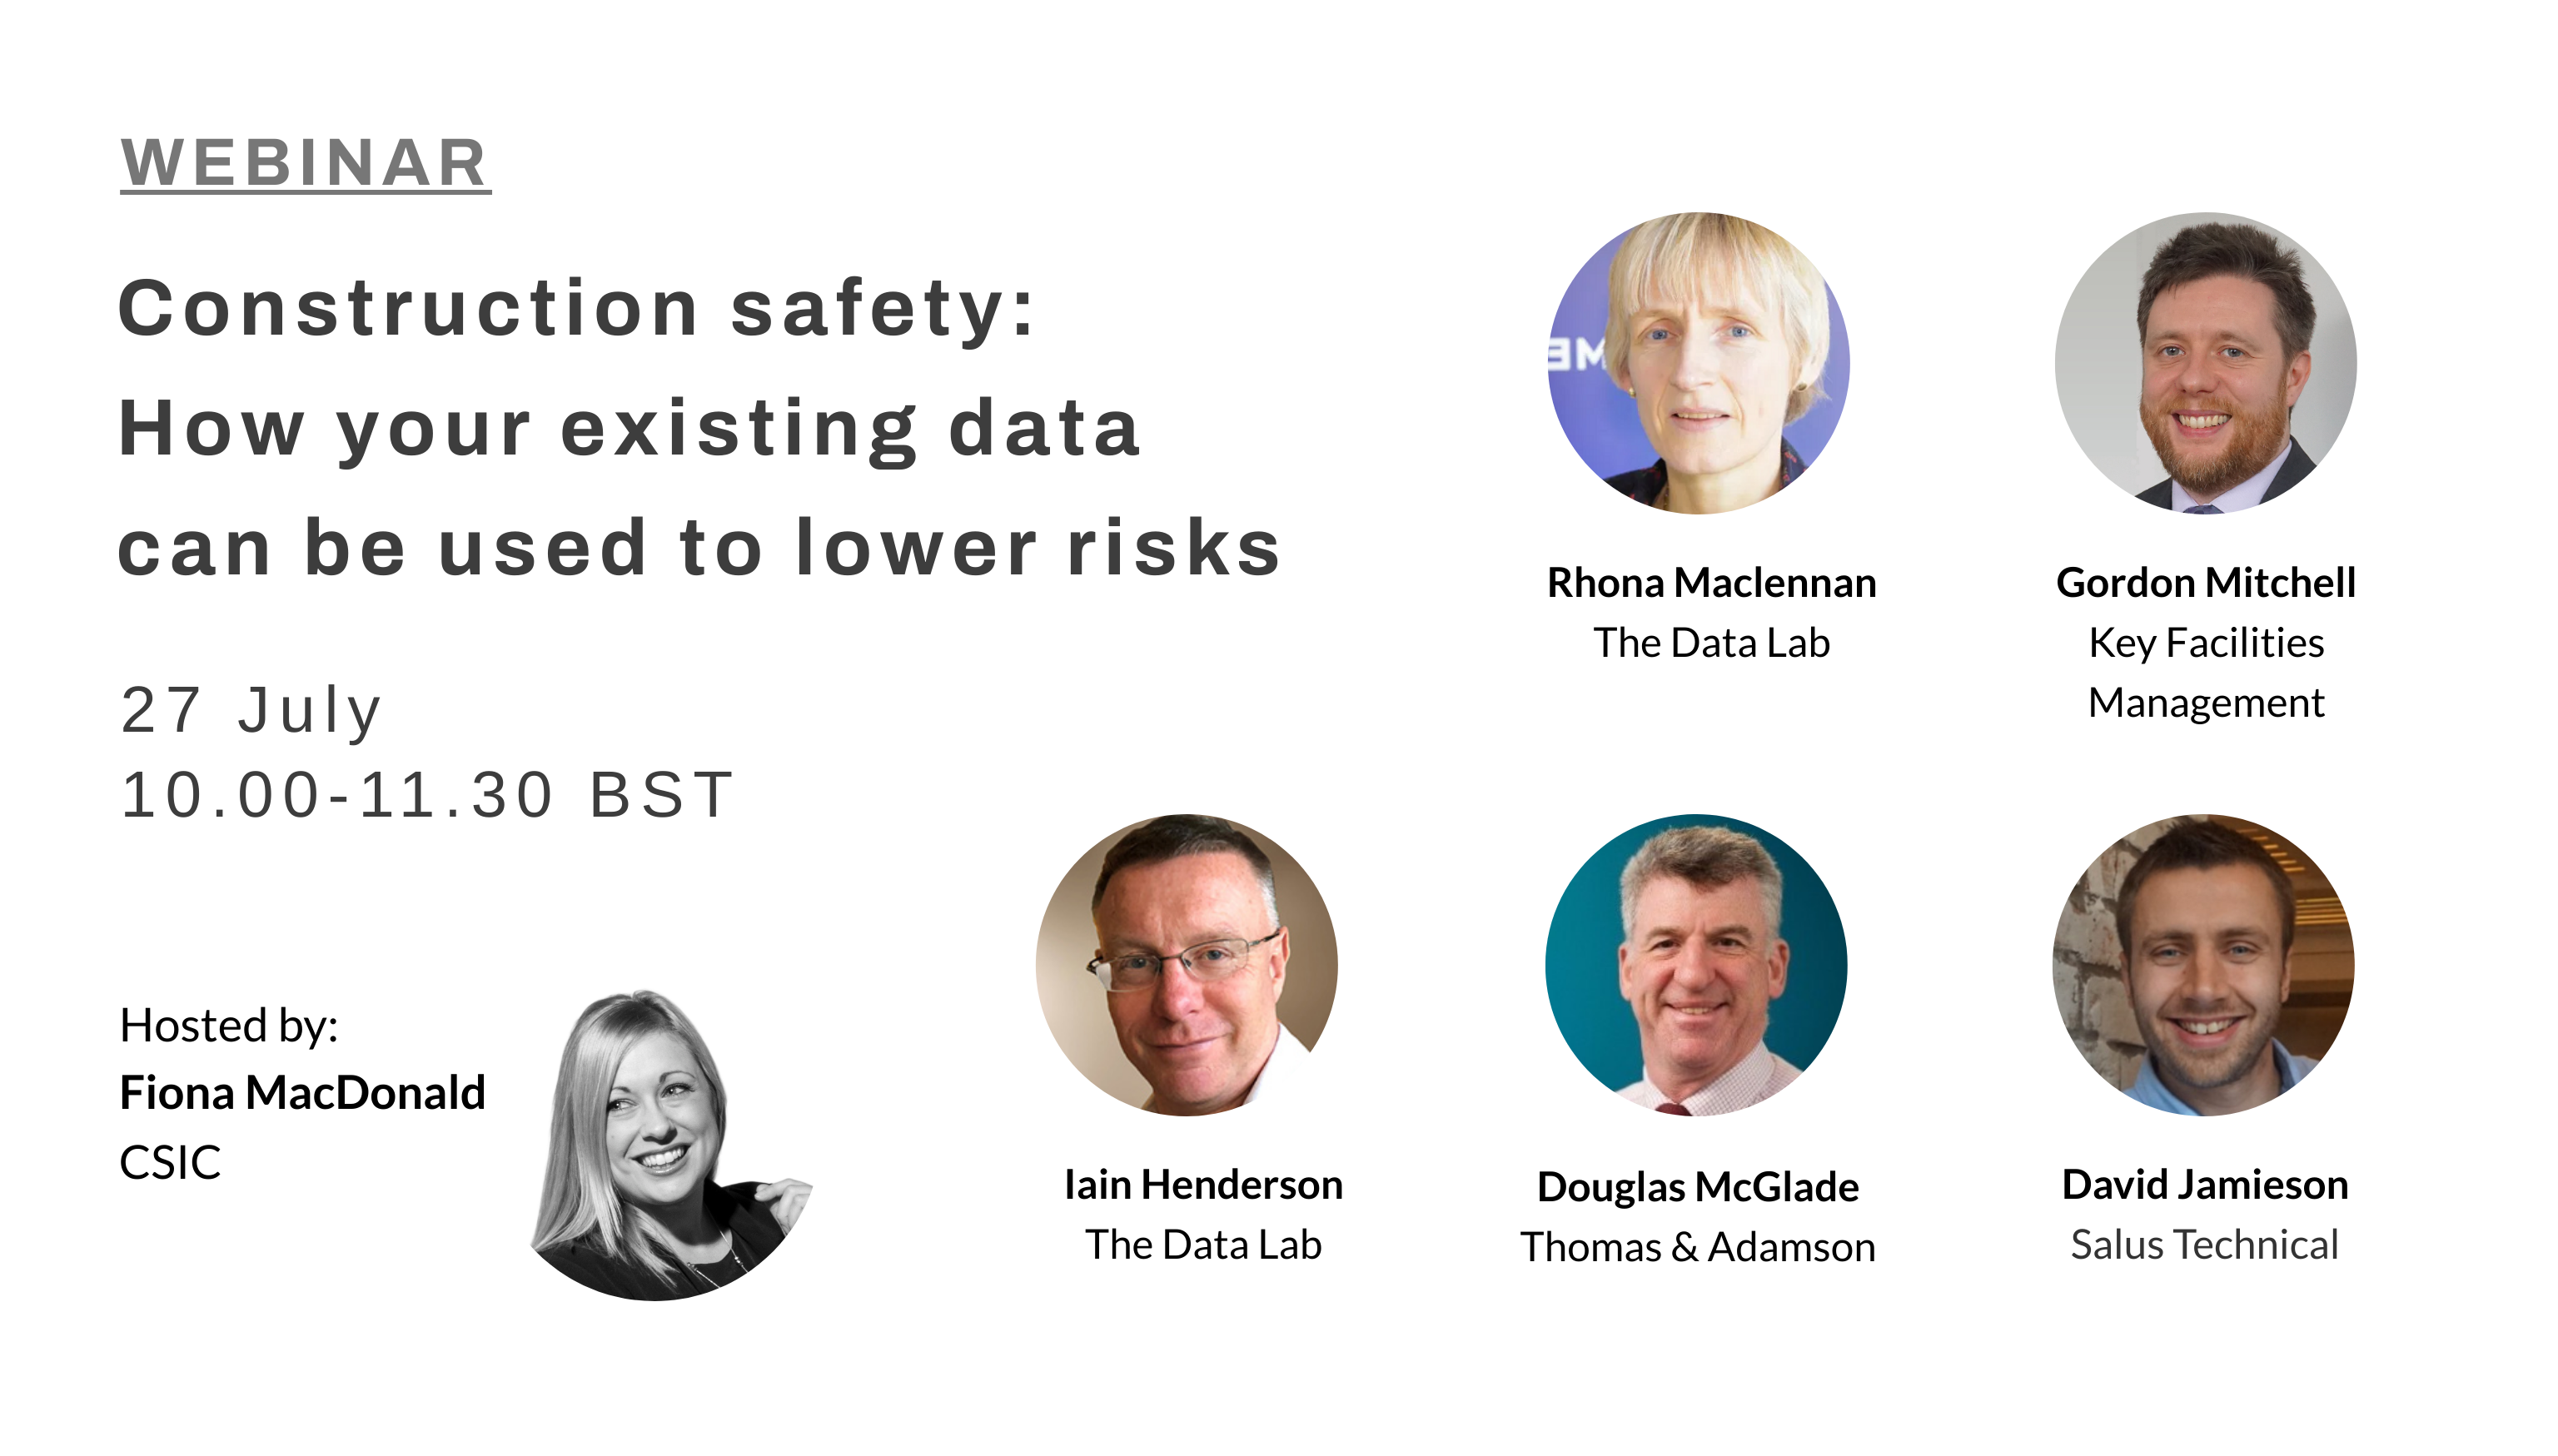 Construction safety: How your existing data can be used to lower risks